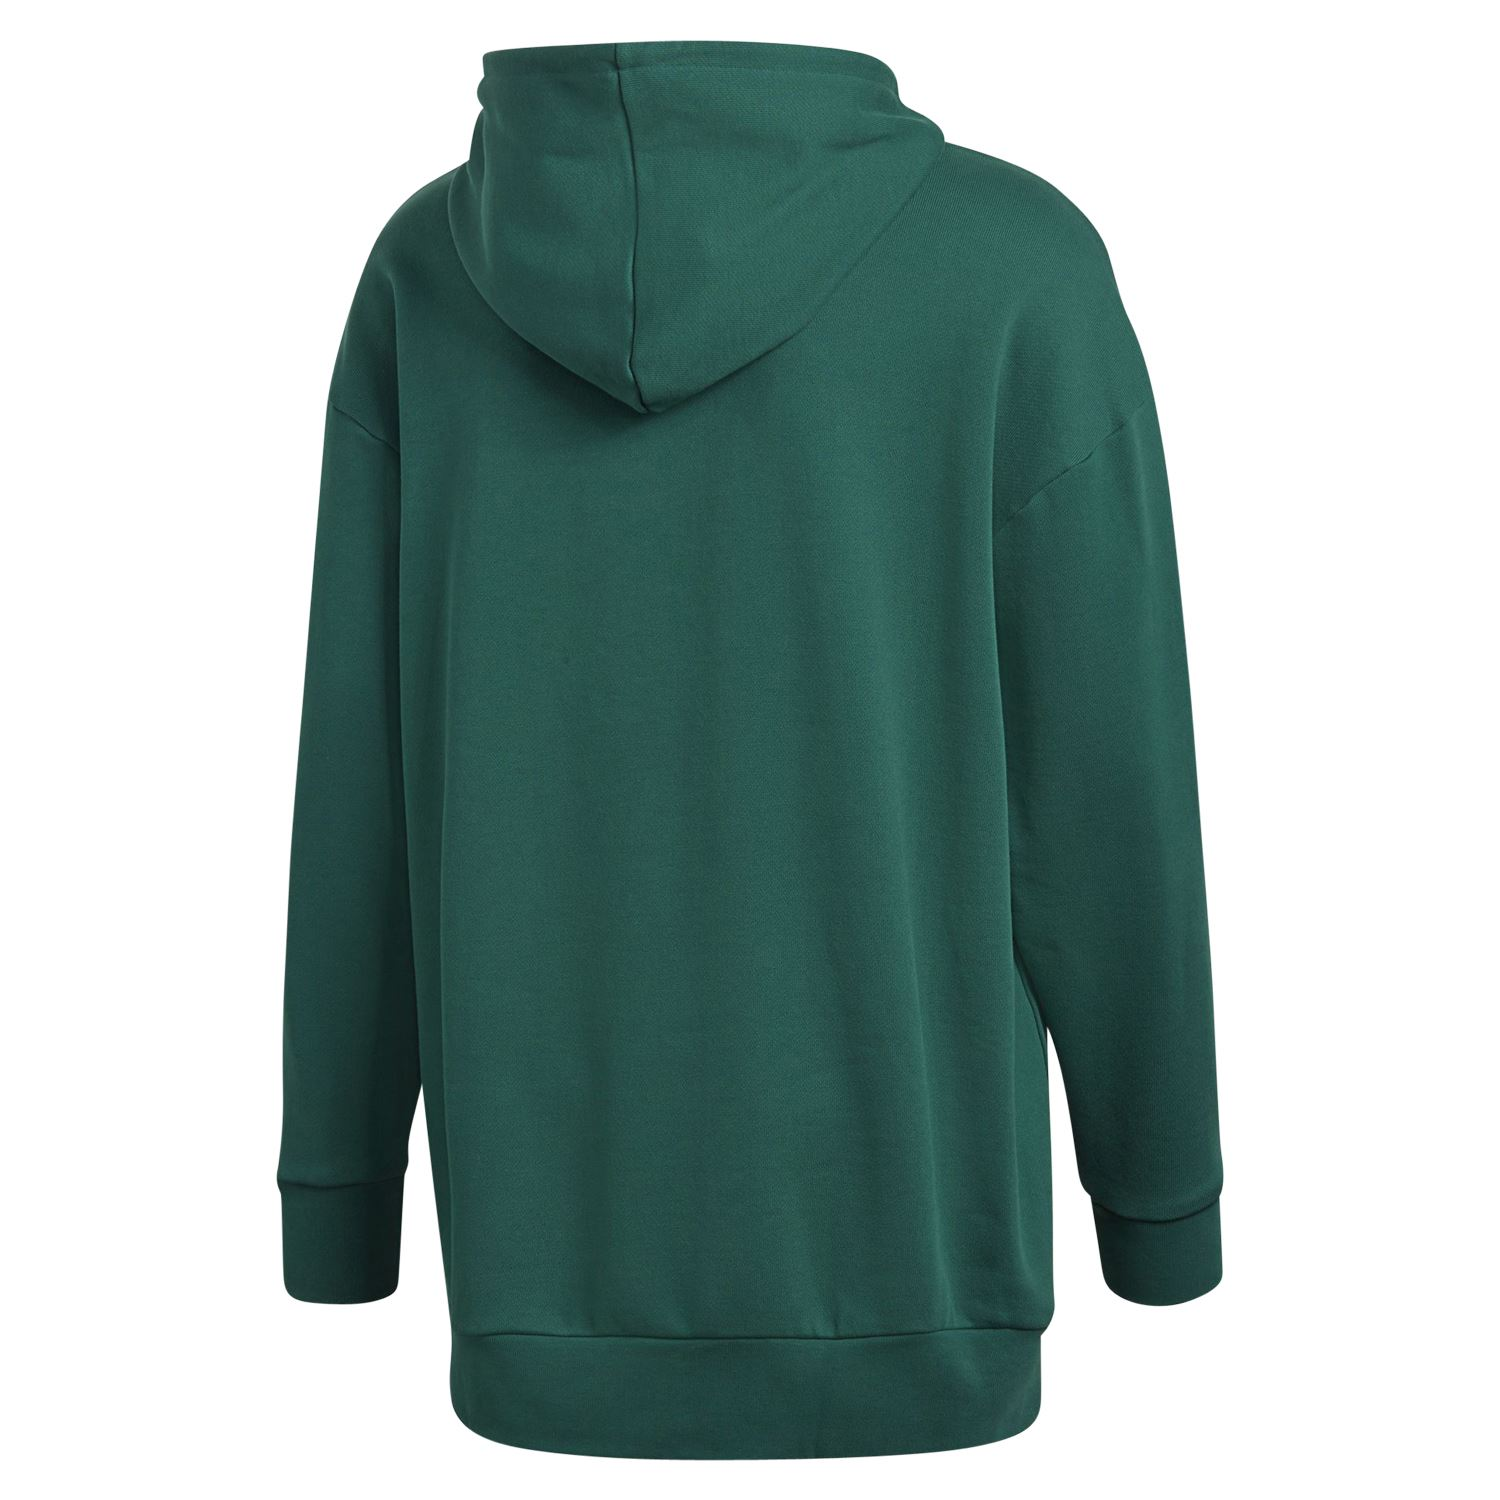 half off 0e709 eaa48 Details about adidas ORIGINALS MEN S TREFOIL OVERHEAD HOODIE GREEN RETRO  PULLOVER GYM WARM